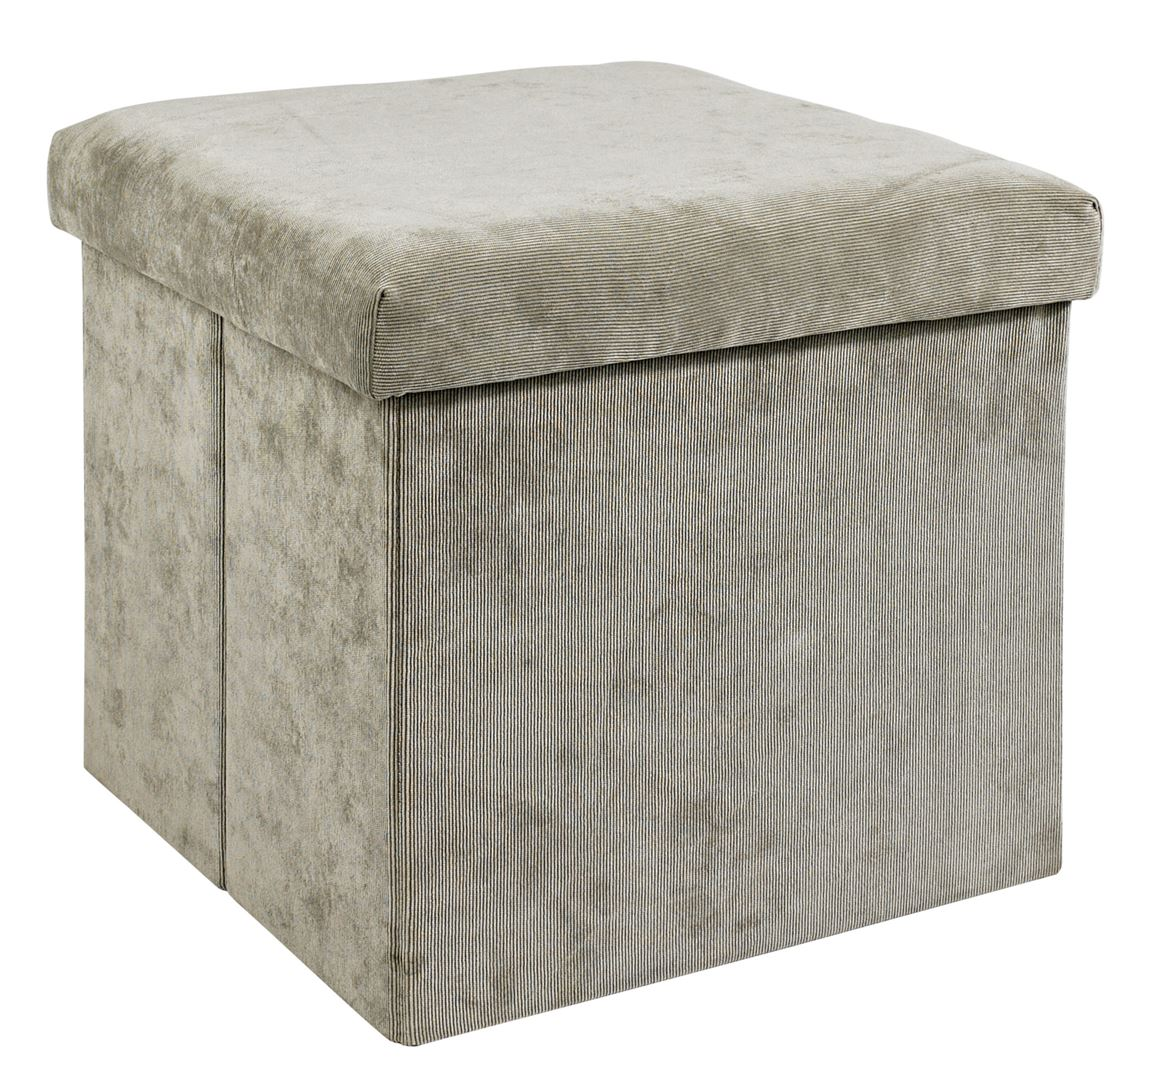 corduroy pouf de rangement gris taupe h 38 x larg 38 x p 38 cm sp cialiste depuis 40 ans. Black Bedroom Furniture Sets. Home Design Ideas